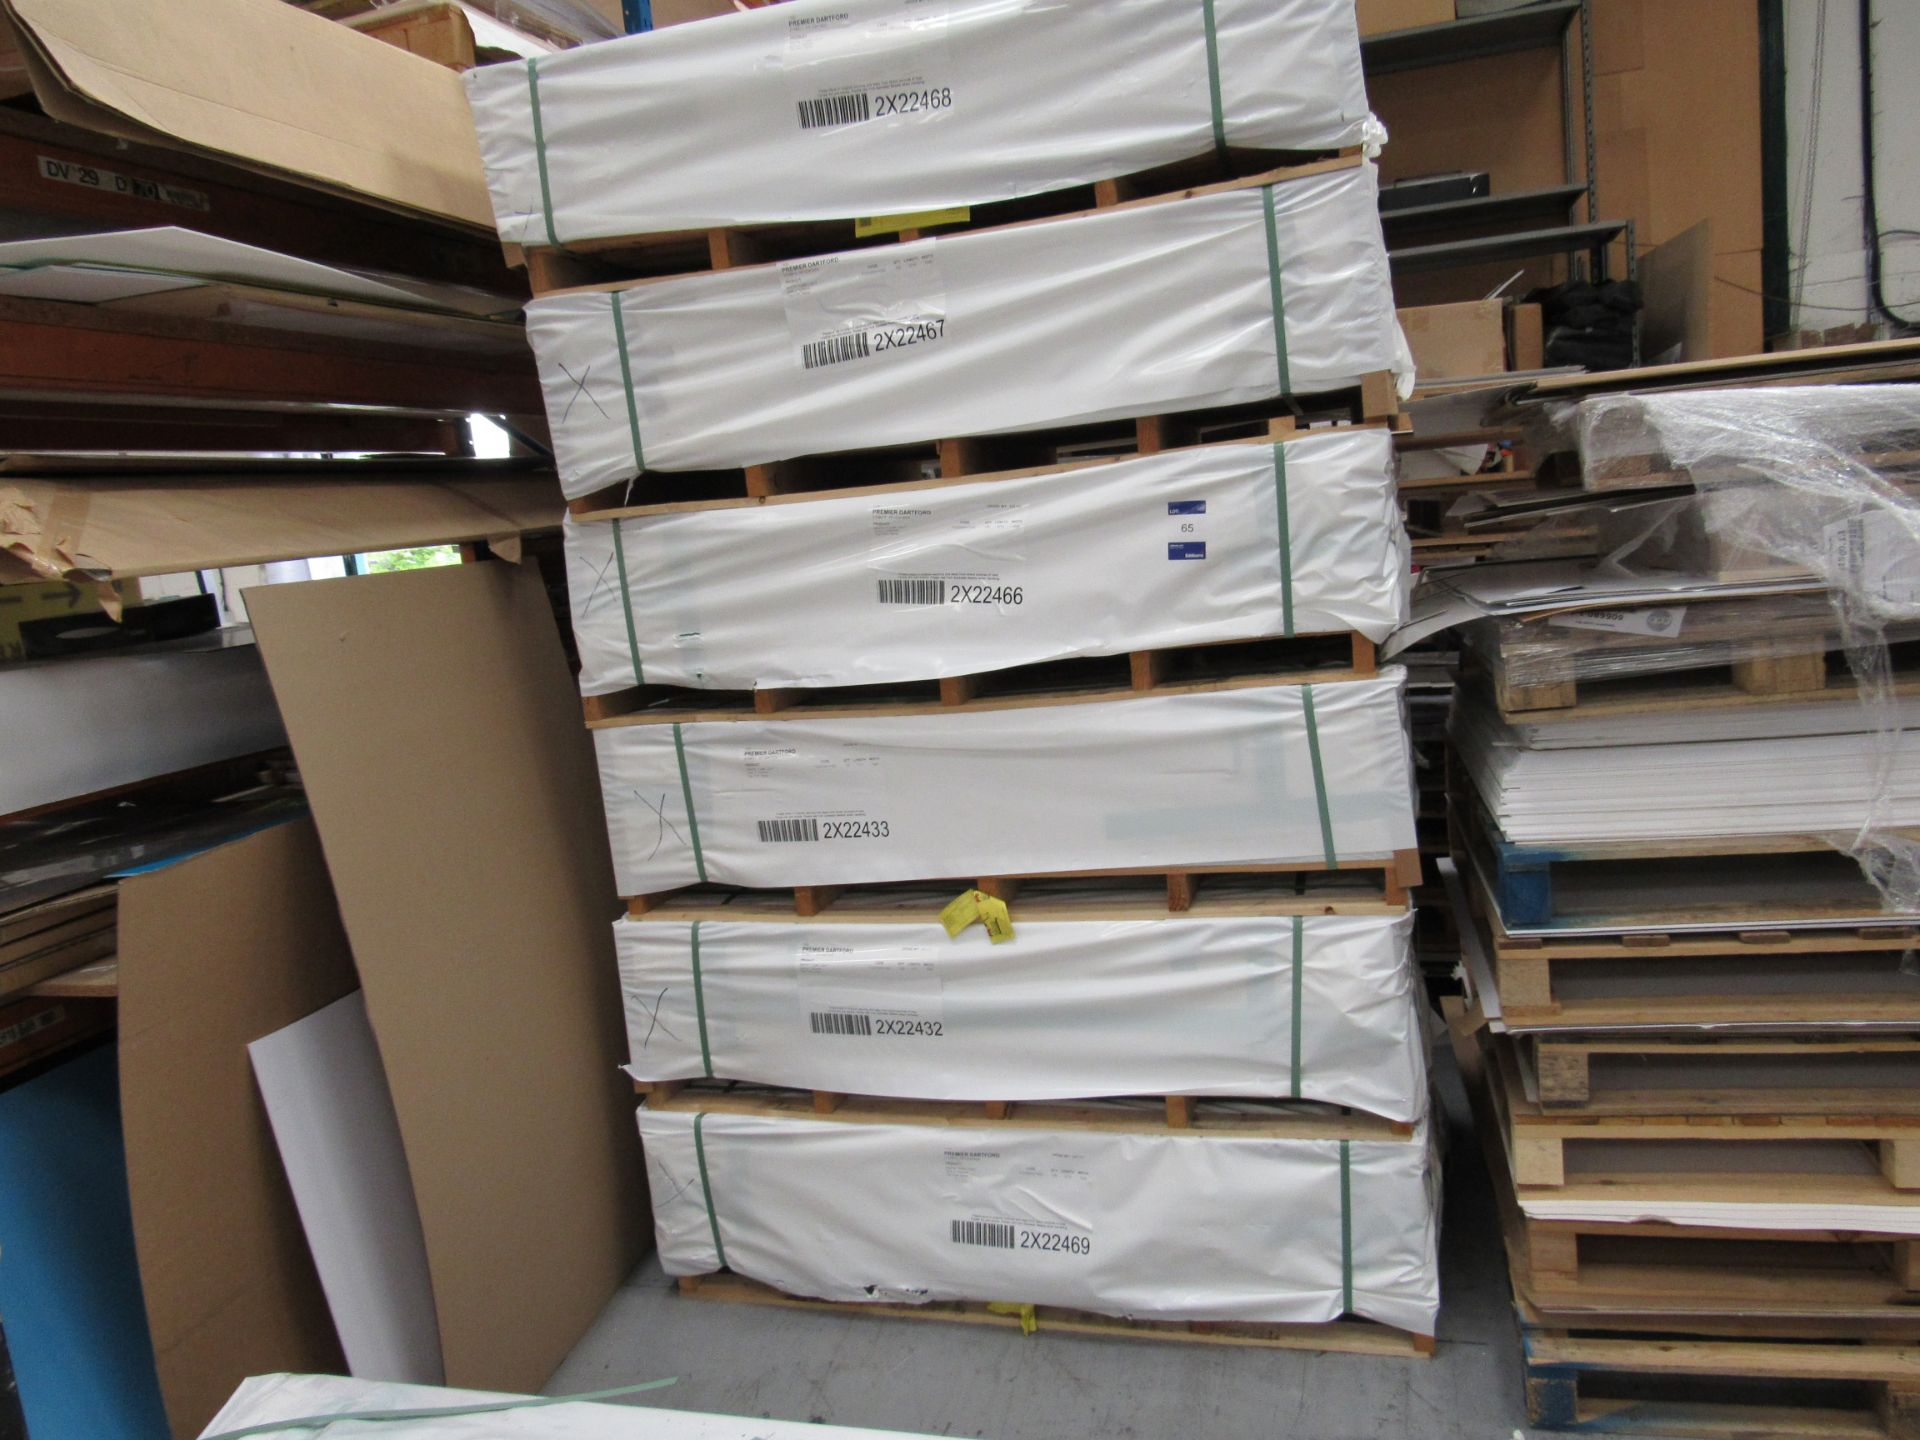 6 Packs and Part Pack White Foam Light 3mm x 1520mm Boards - Image 3 of 5